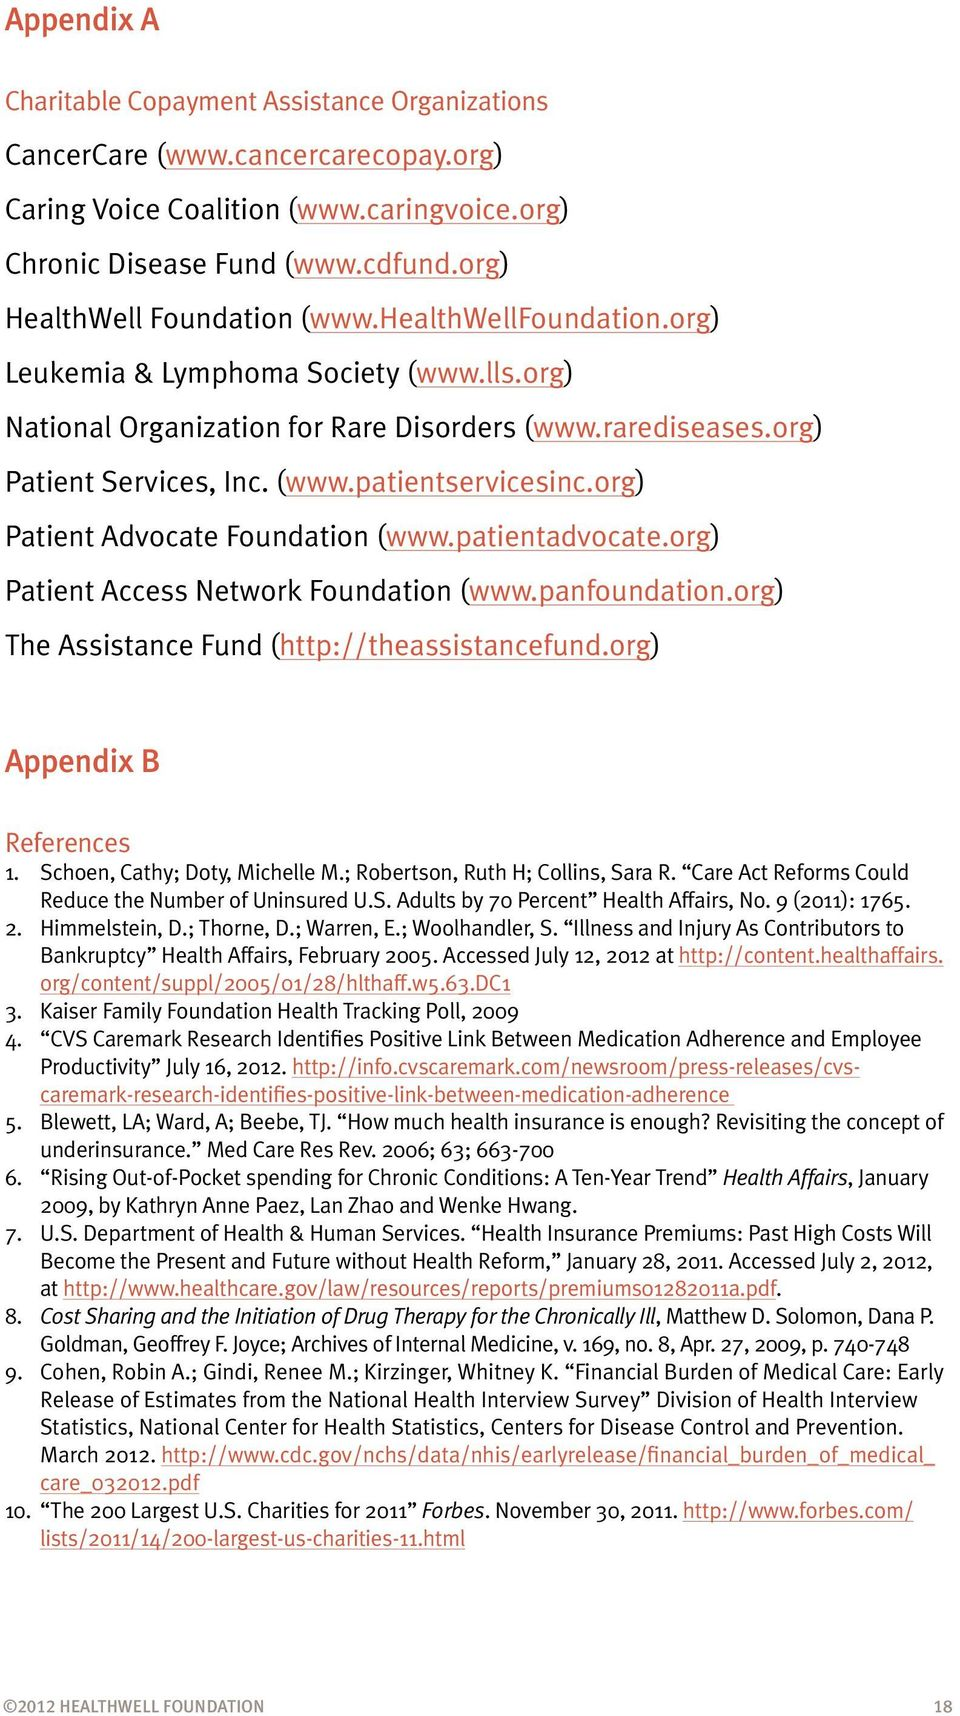 org) Patient Advocate Foundation (www.patientadvocate.org) Patient Access Network Foundation (www.panfoundation.org) The Assistance Fund (http://theassistancefund.org) Appendix B References 1.